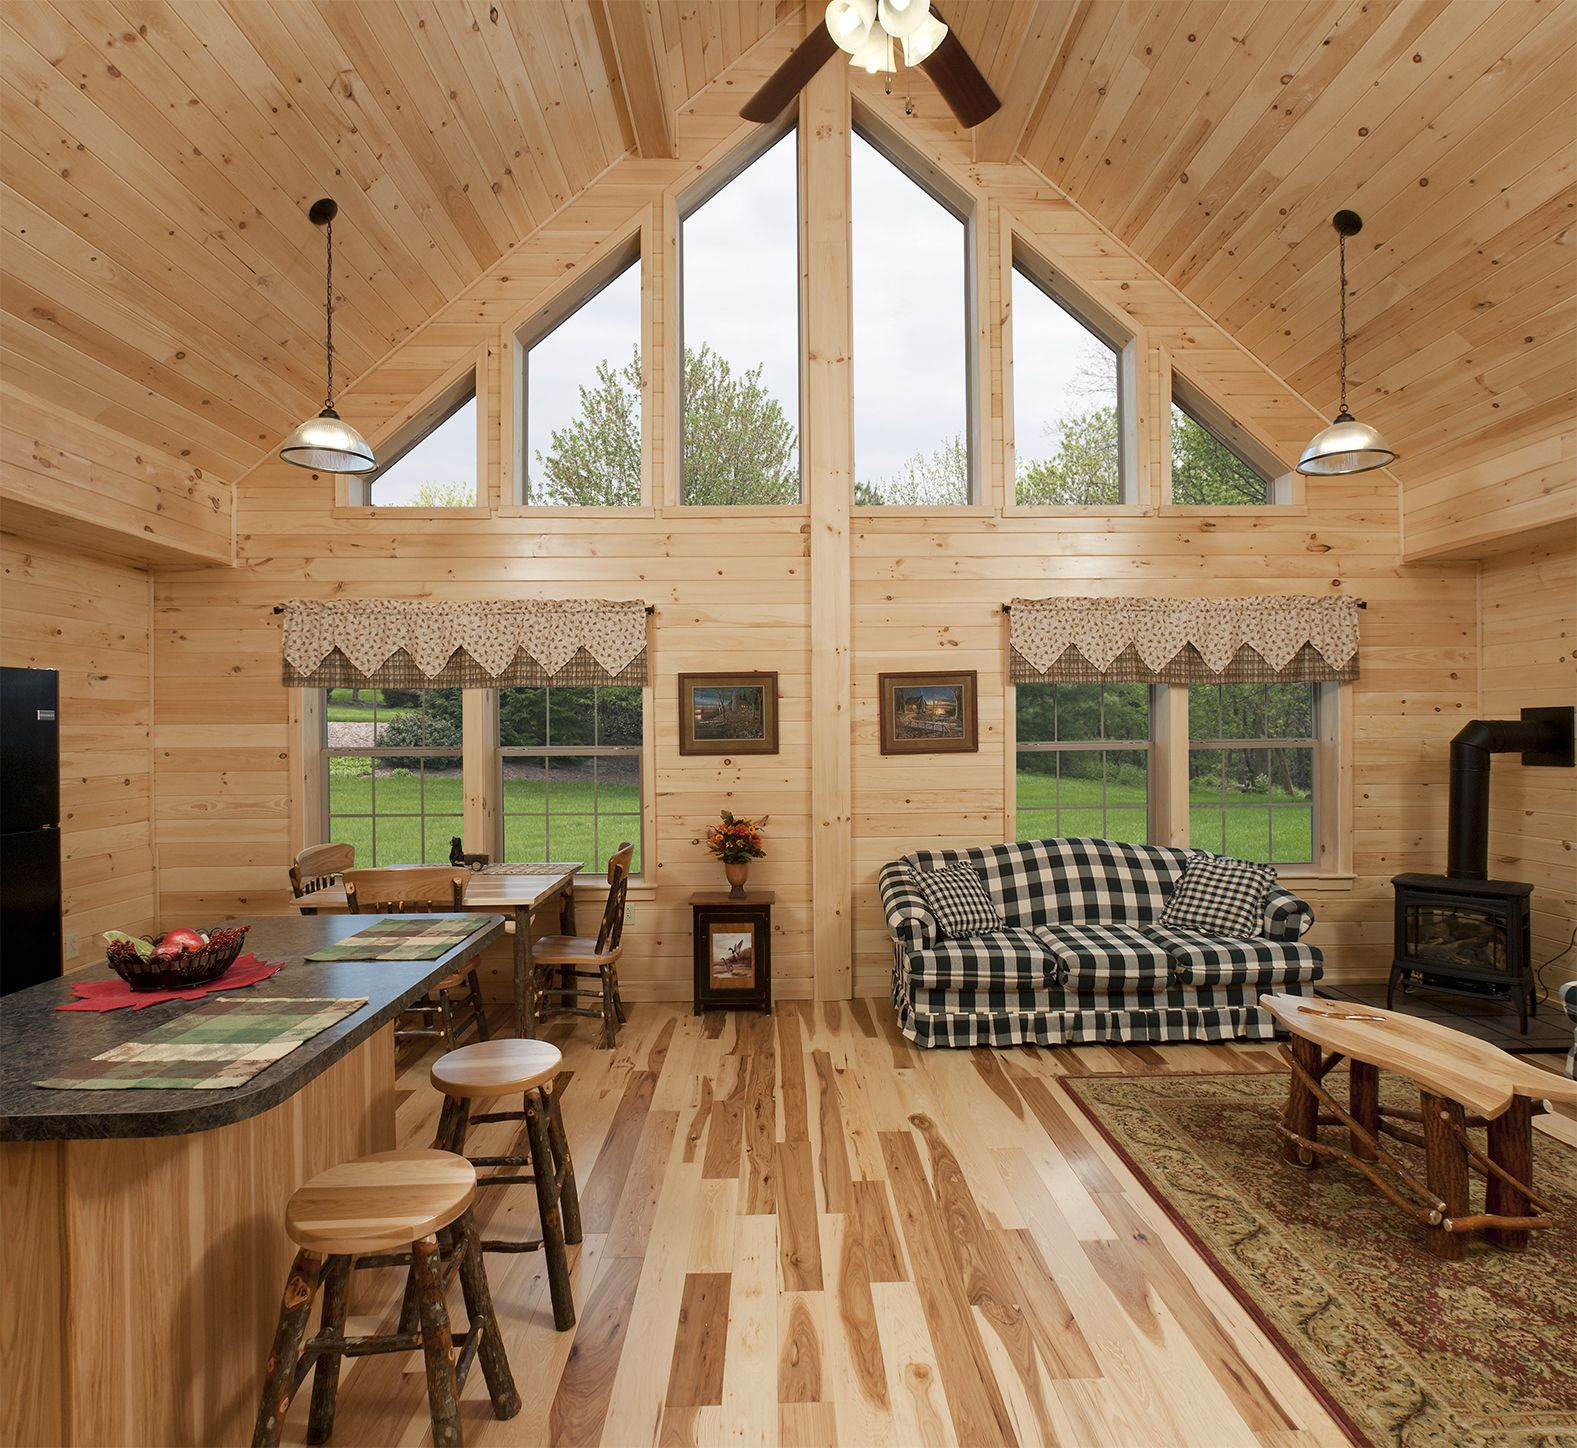 cabins choosing long cabin experience house about us producer palmatin log manufacturers